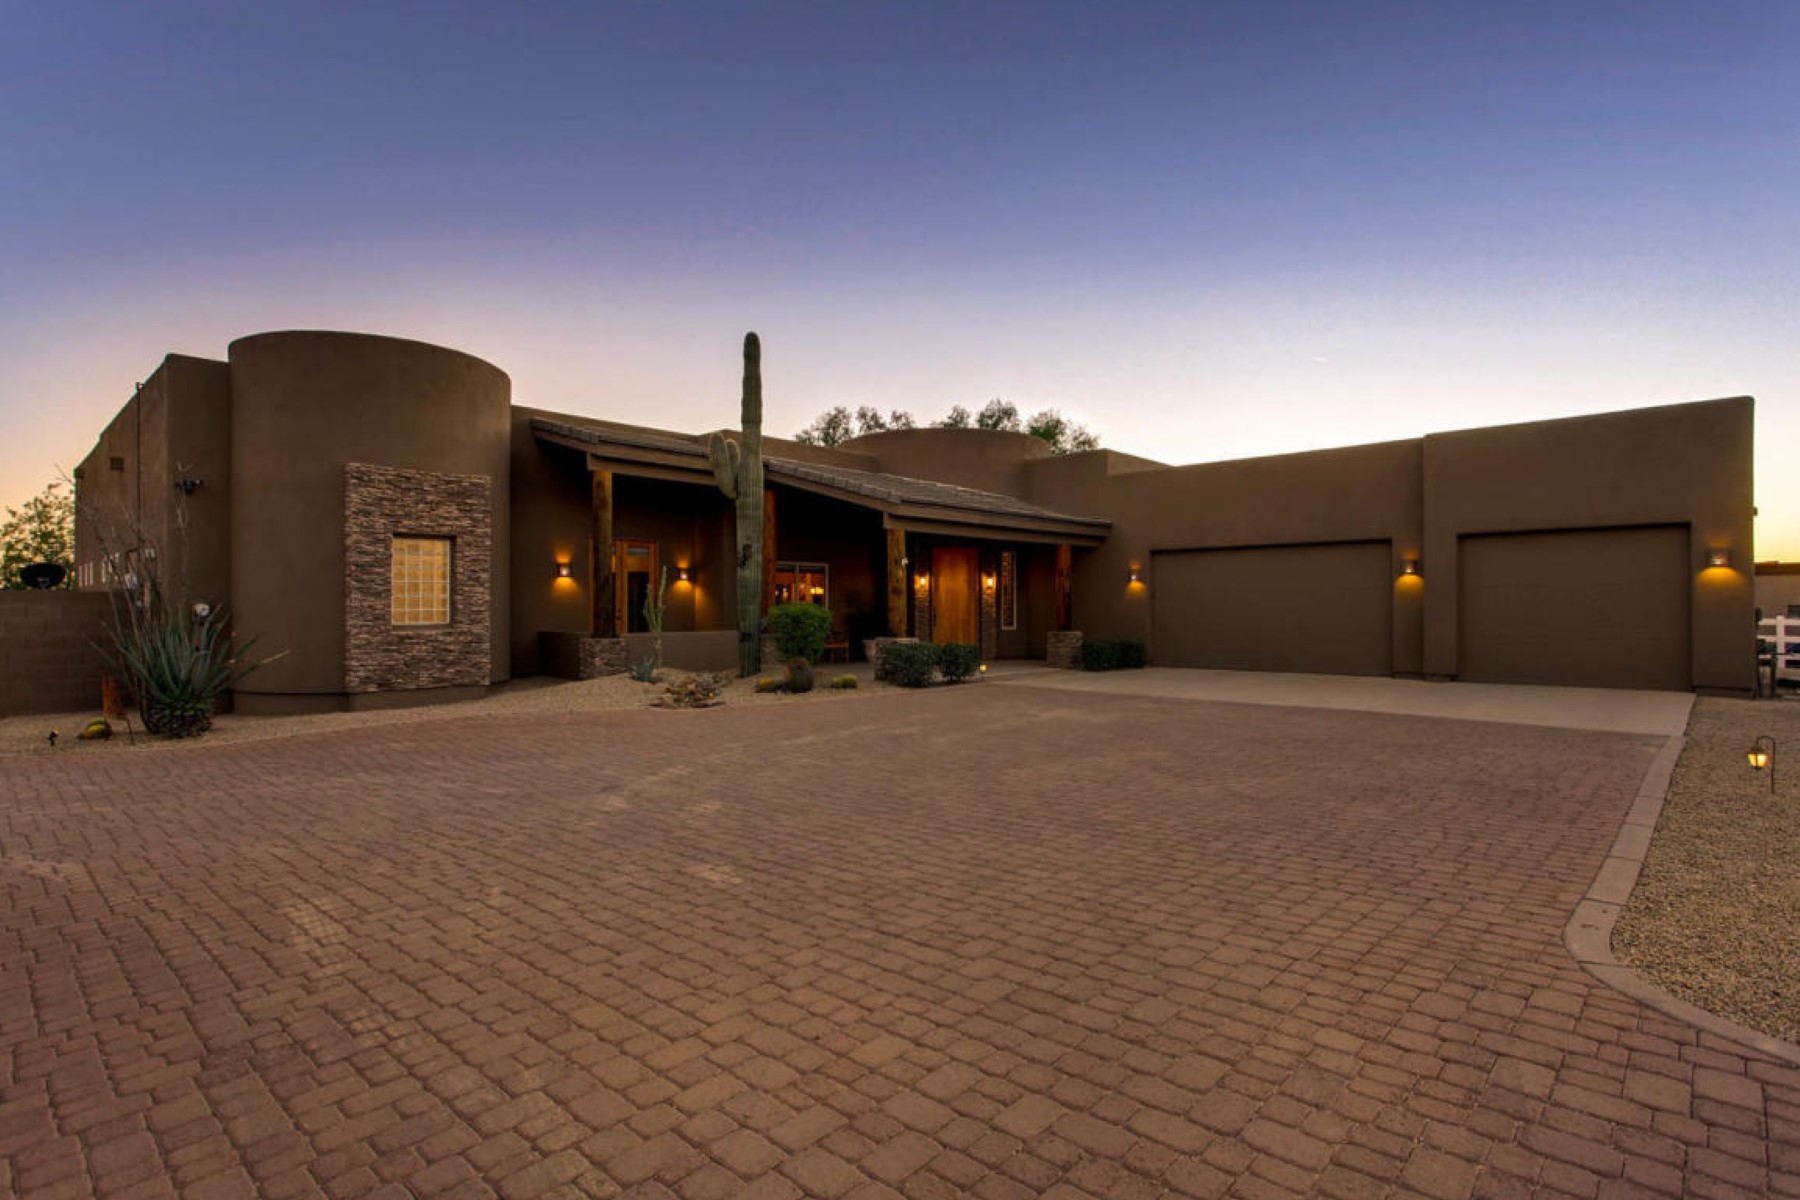 Maison unifamiliale pour l Vente à Charming and custom home on 1.2 acres with spectacular panoramic views 6033 E Lone Mountain Rd Cave Creek, Arizona, 85331 États-Unis